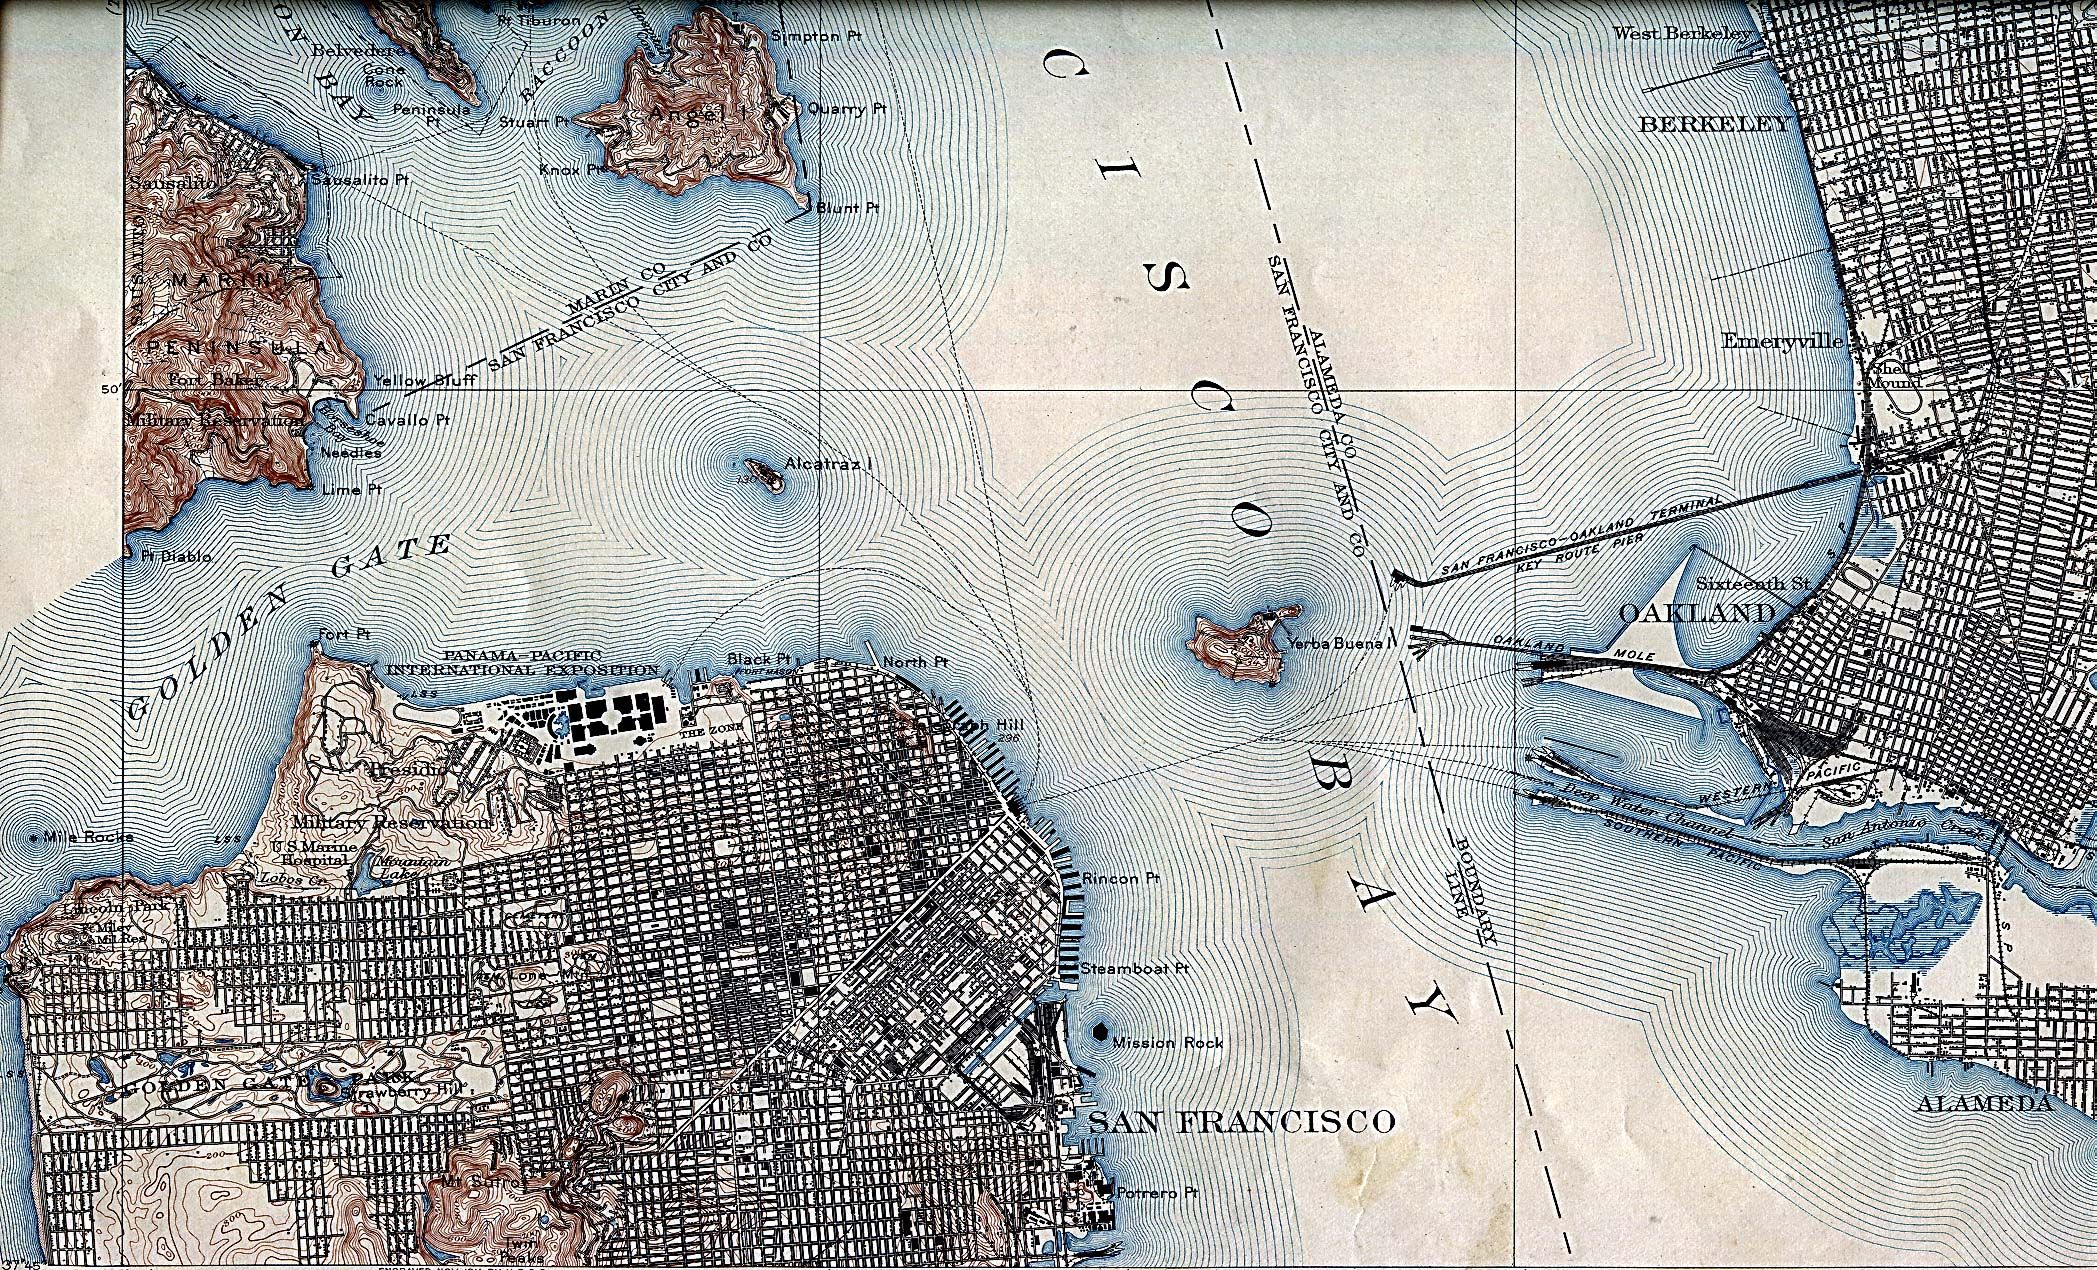 San Francisco Treasure Island Map%0A request for sponsorship proposal template